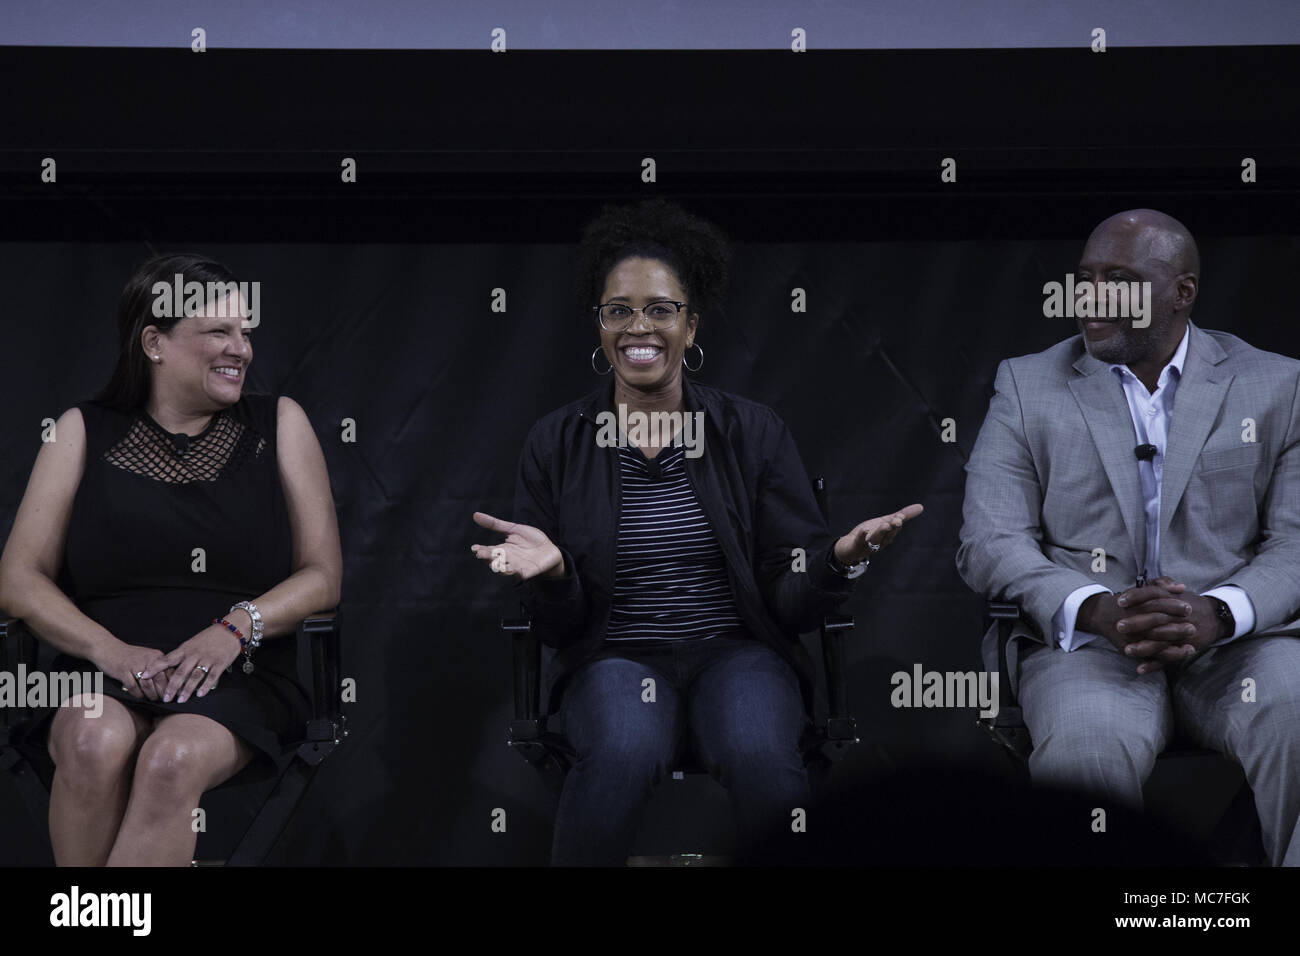 New York, NY, USA. 12th Apr, 2018. KAREN DONOVAN BROWN, The great granddaughter of Marshall Walter ''Major'' Taylor, Ayesha McGowan, Elite cyclist, Anthony Taylor, National Brotherhood of Cyclists, are guest panelist for the premiere of ''The Major'' in New York. 'The Major'' is a documentary on the life of Marshall Walter ''Major'' Taylor which will be broadcasted on ESPN. Taylor was the first African-American World Champion cyclist. Credit: Brian Branch Price/ZUMA Wire/Alamy Live News - Stock Image